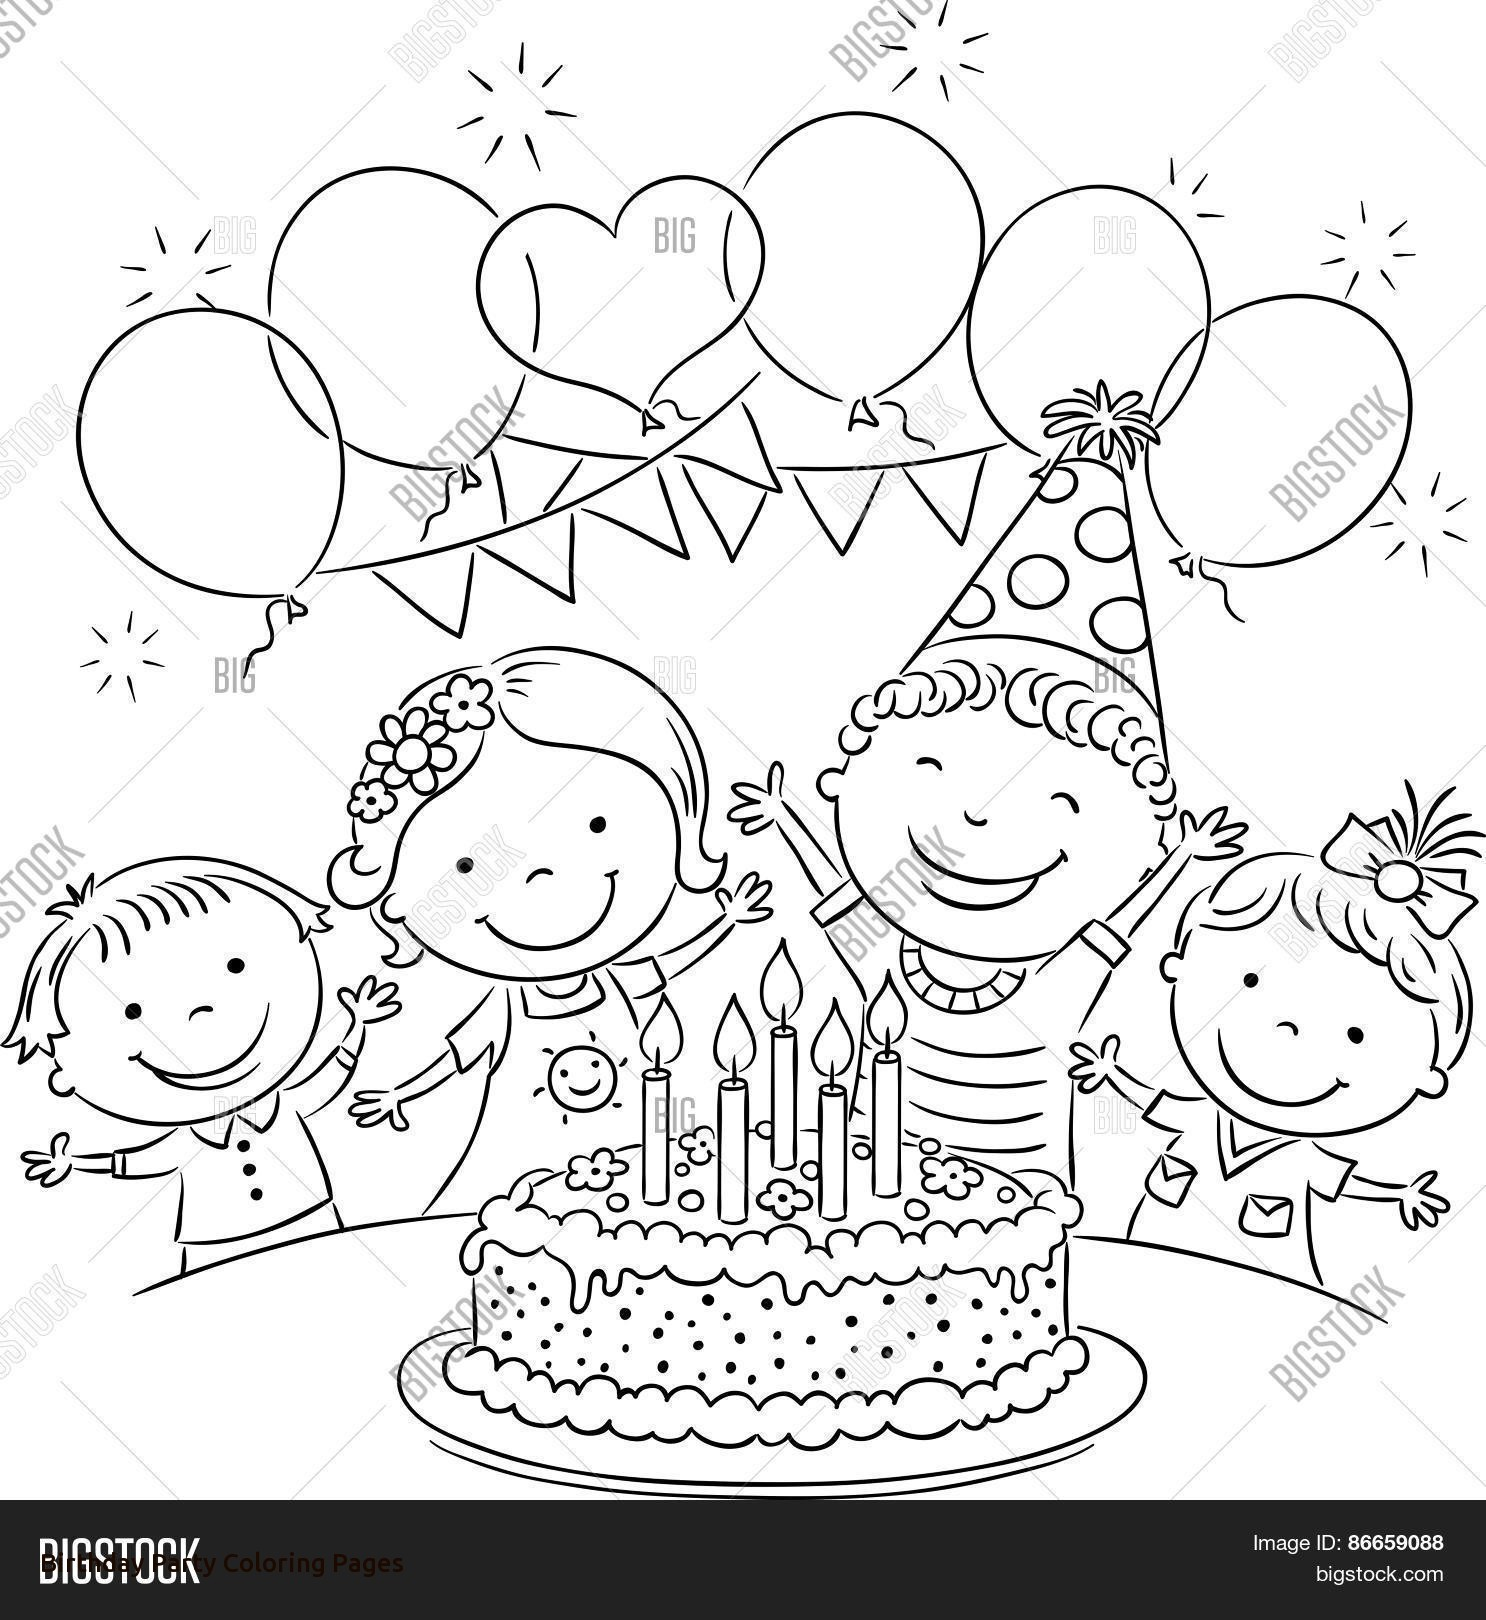 birthday party coloring pictures ; drawing-of-birthday-scene-birthday-party-scene-for-drawing-coloring-pages-birthday-party-with-birthday-party-coloring-pages